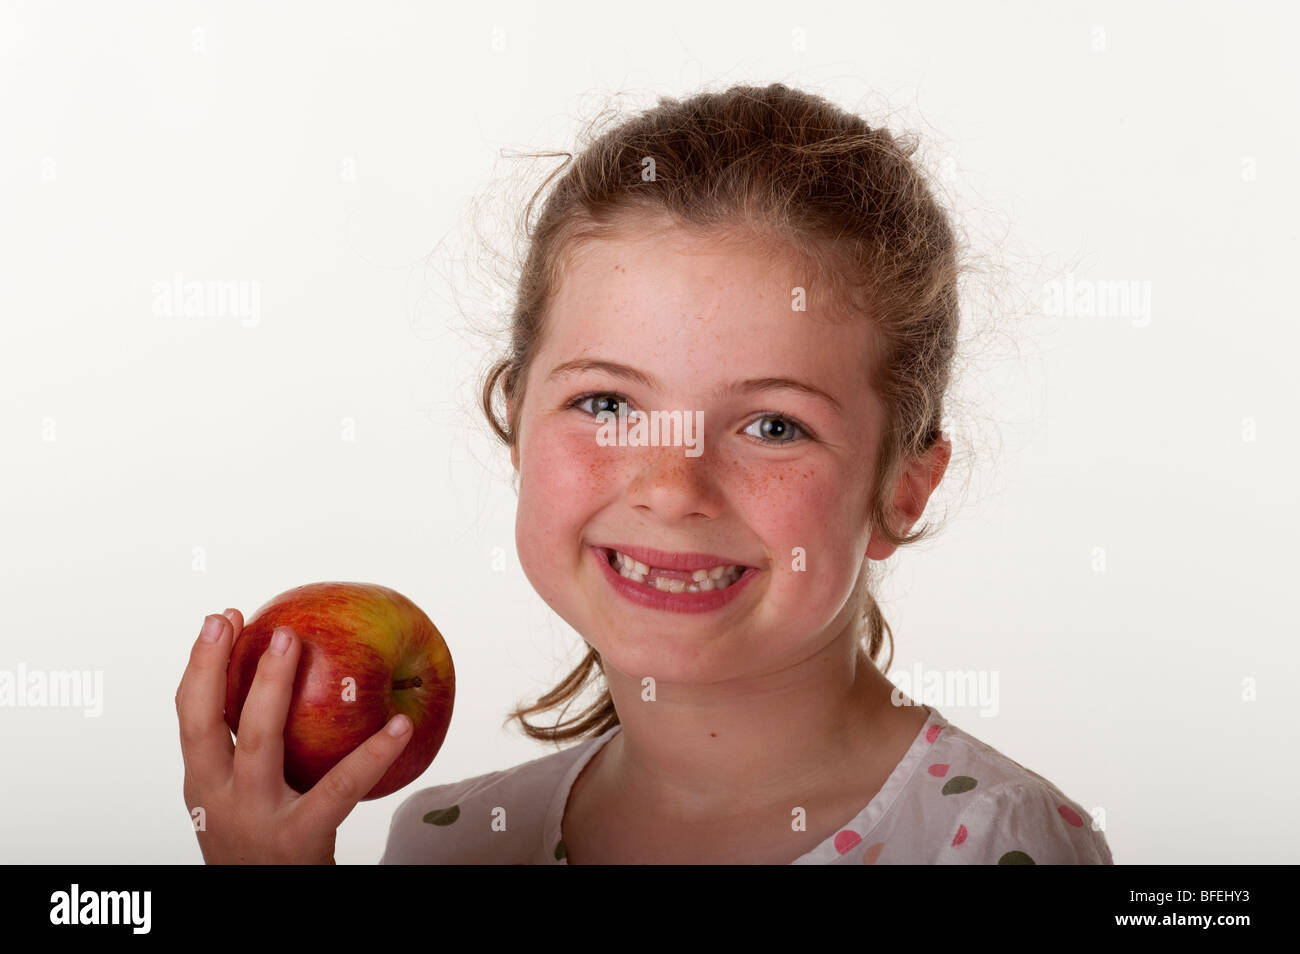 little girl (7 years old) who is missing front teeth eating apple on red bean bag chair against white background - Stock Image